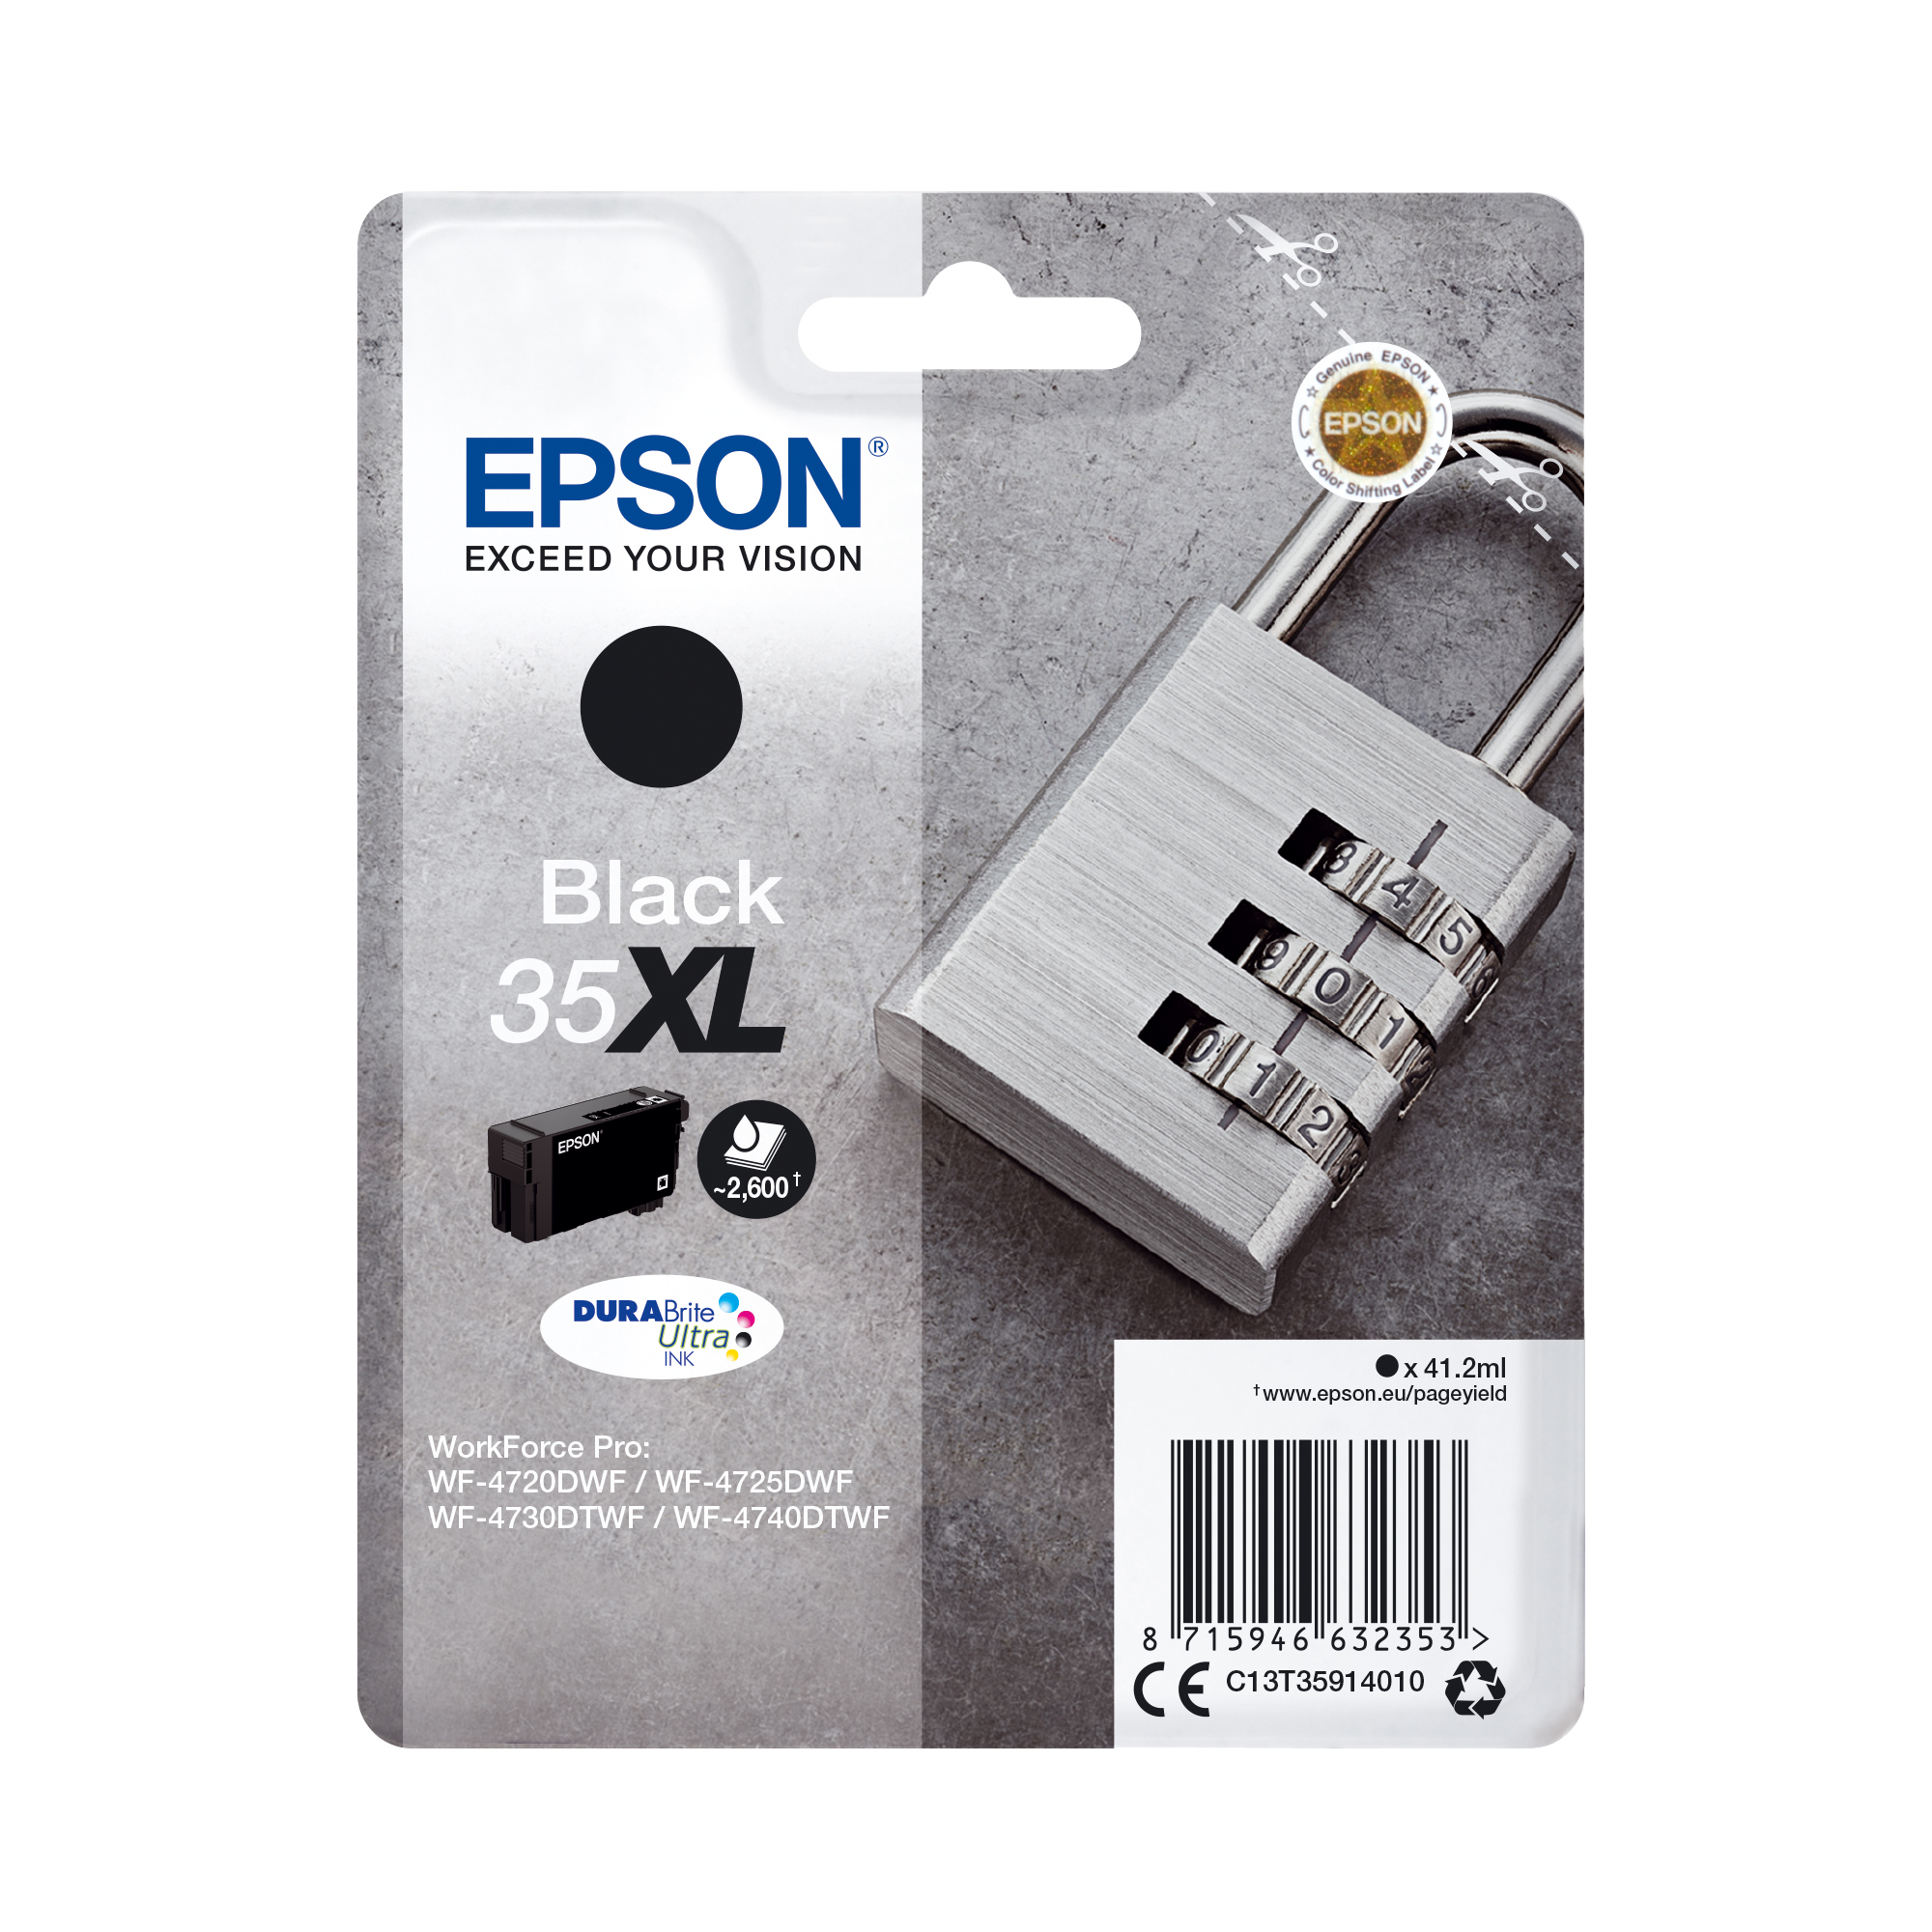 Ink cartridges Epson 35XL Inkjet Cartridge High Yield Page Life 2600pp 41.2ml Black Ref C13T35914010